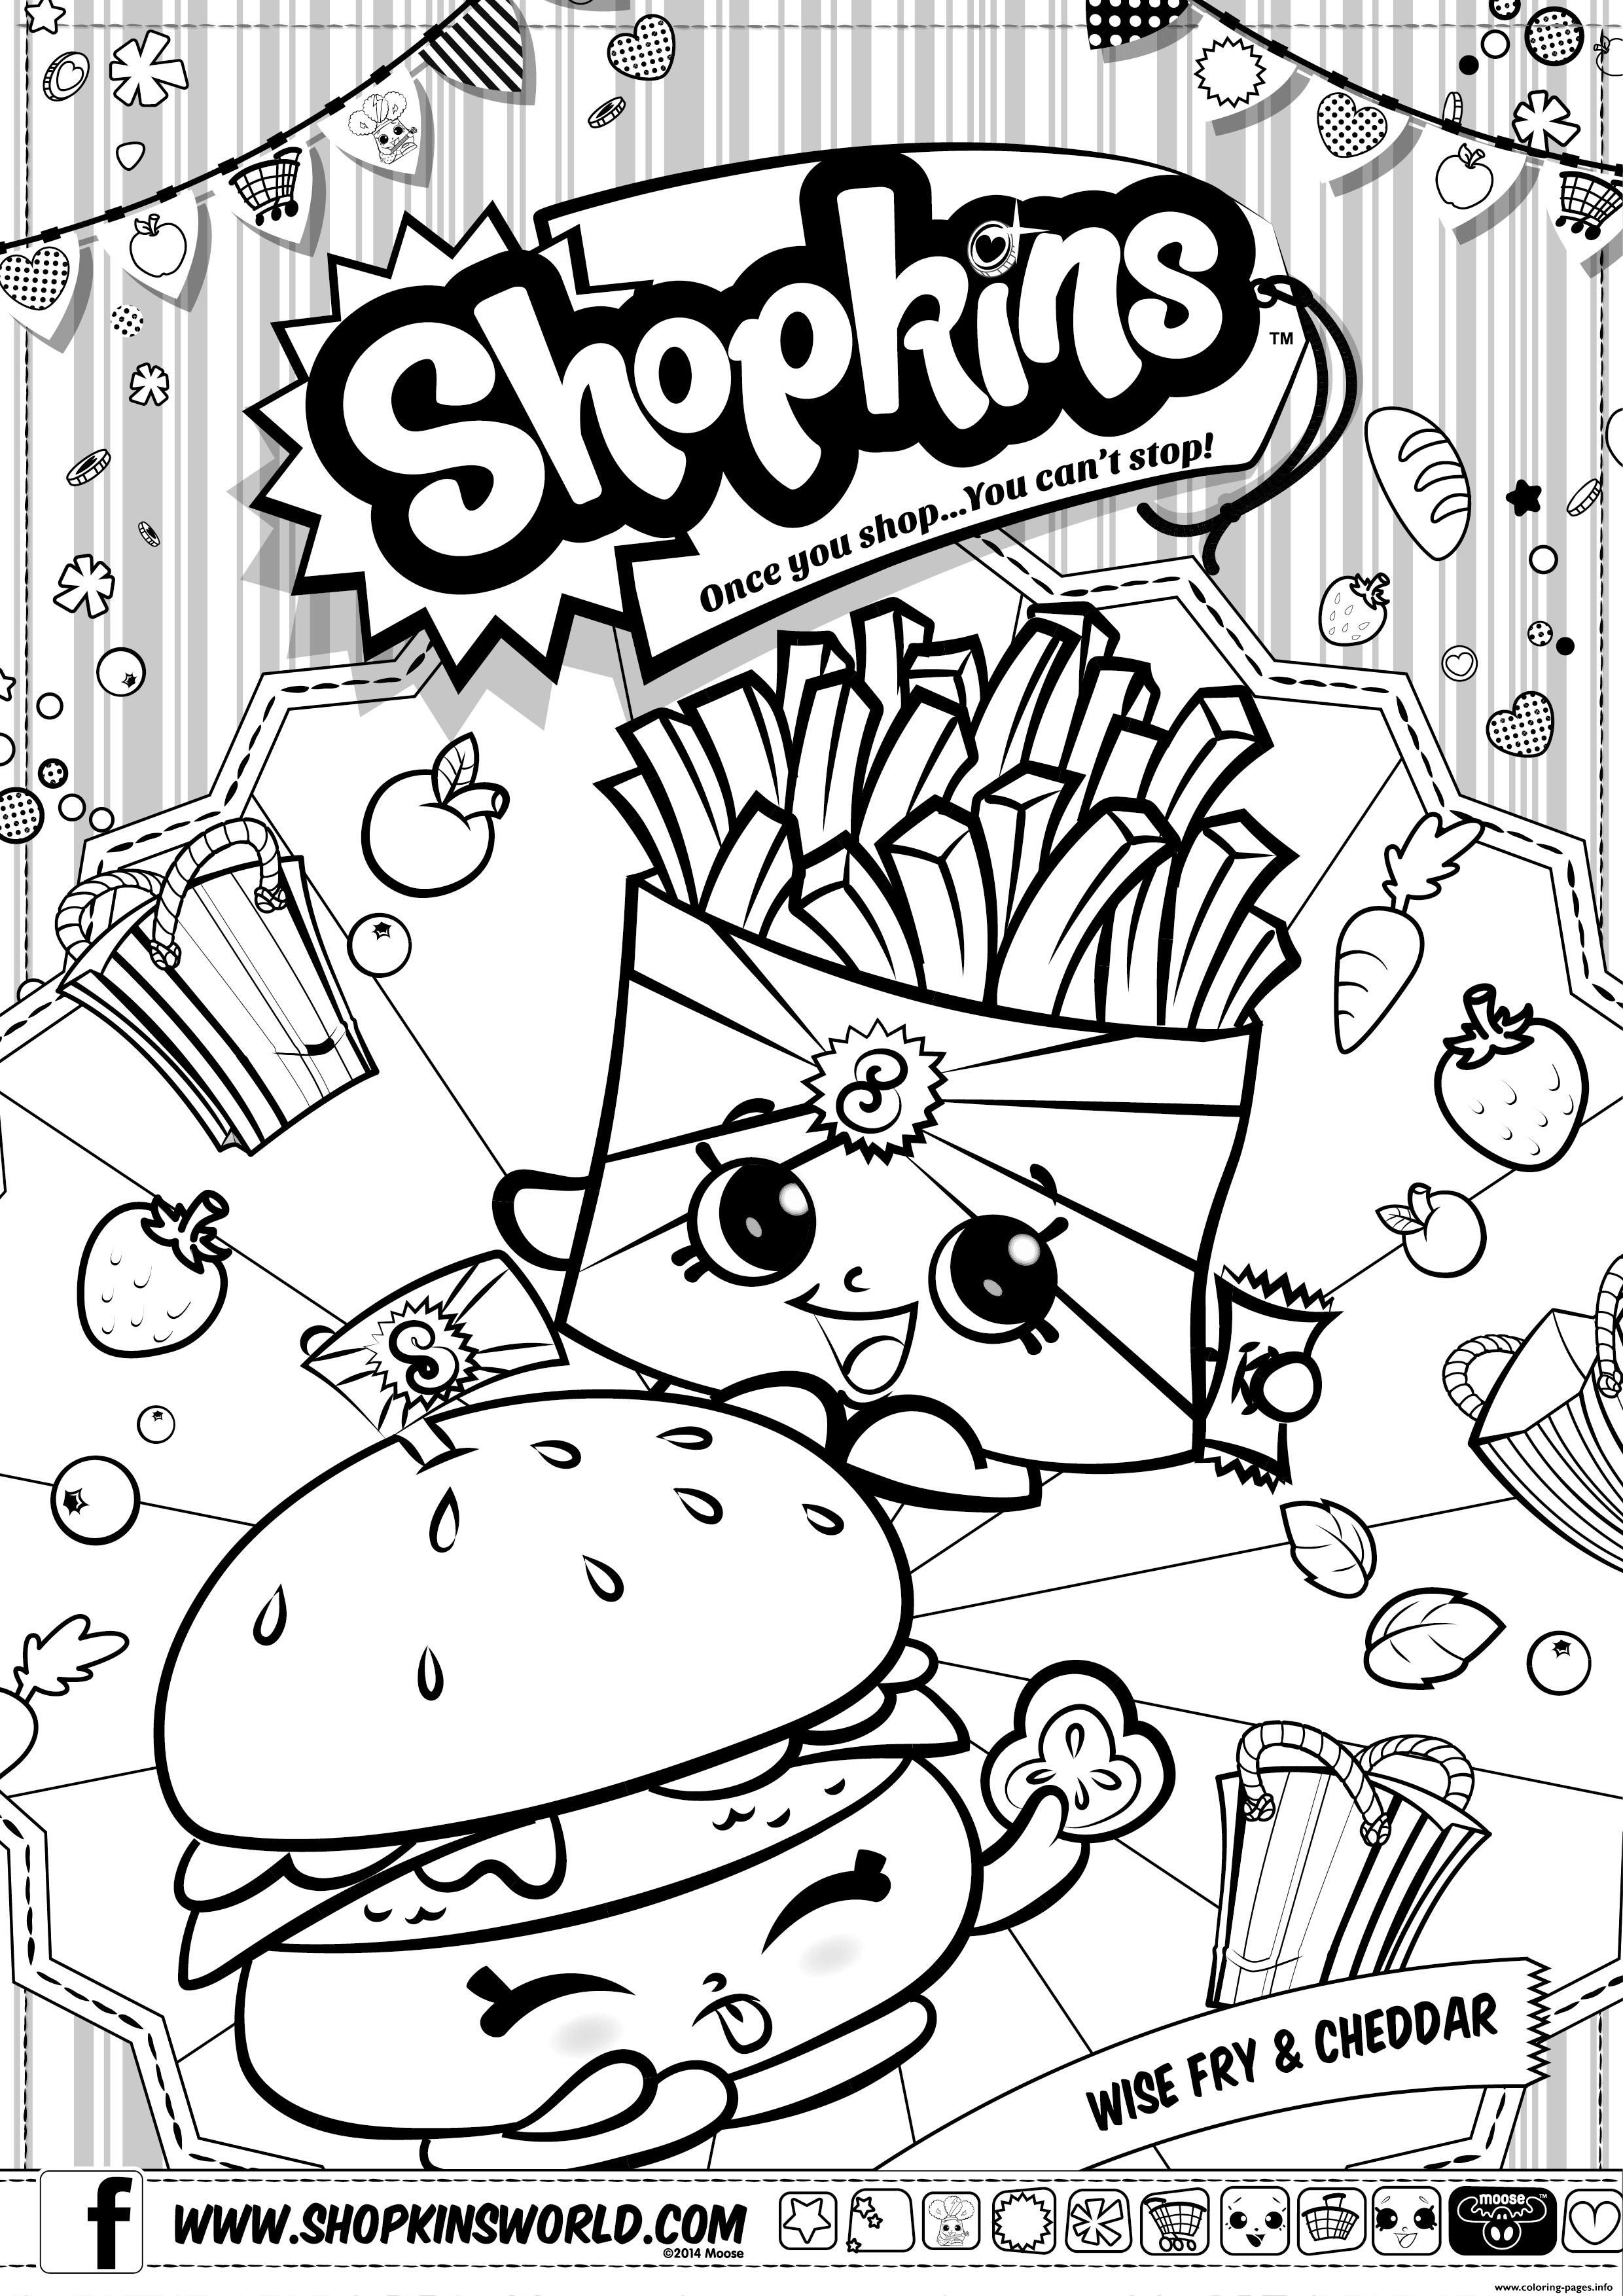 Print Shopkins Wise Fry Cheddar Coloring Pages Coloring Pages